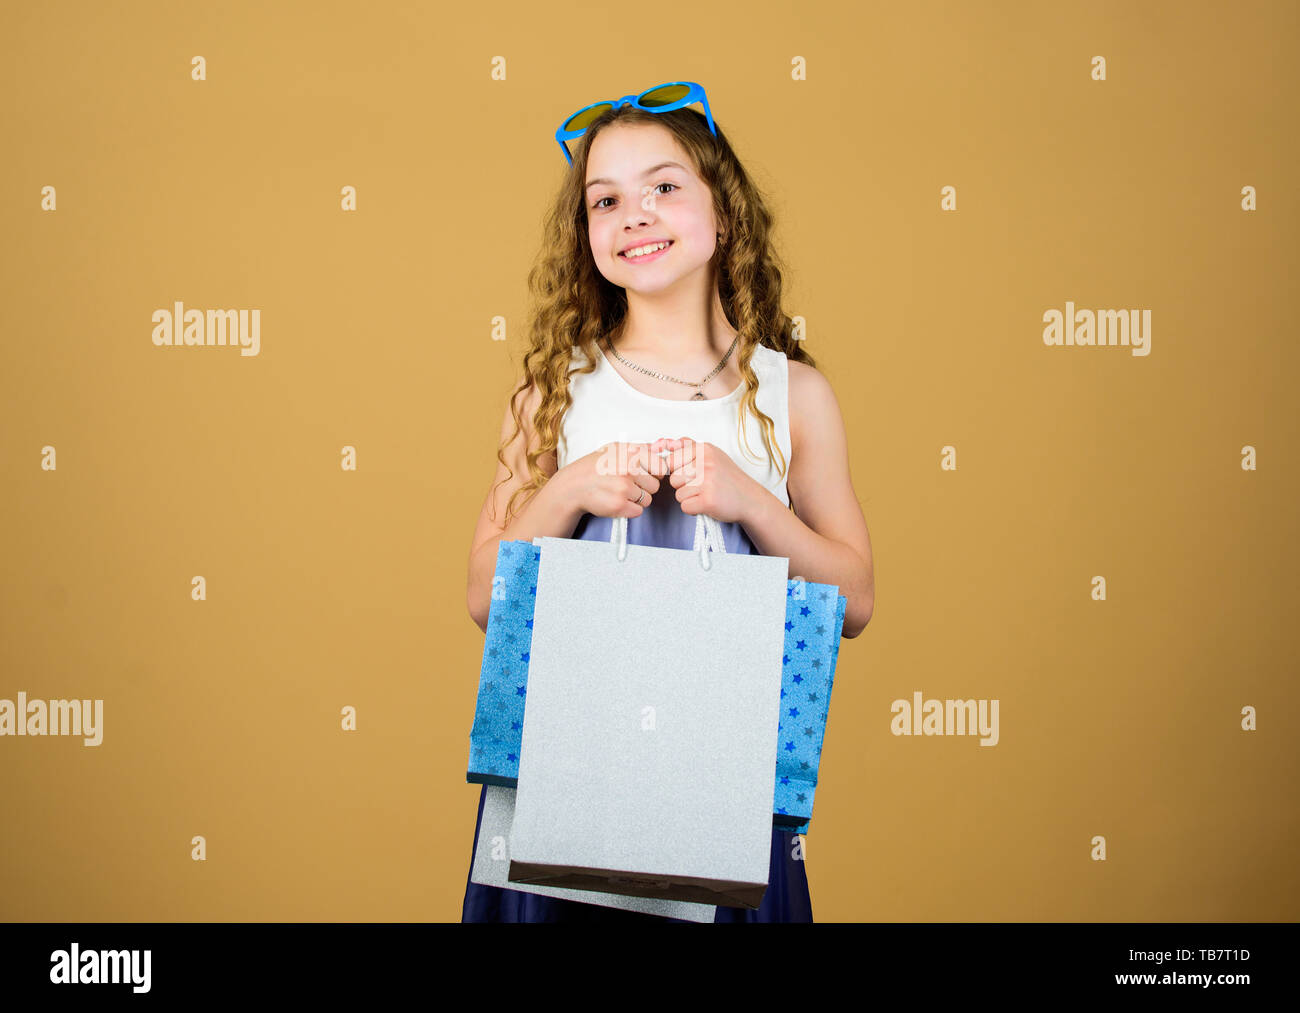 Successful shopping. cyber Monday. Present and gifts buy. black Friday discount. happy birthday holiday. Beauty. happy shopping girl with bags. summer sales. Small girl fashion. - Stock Image